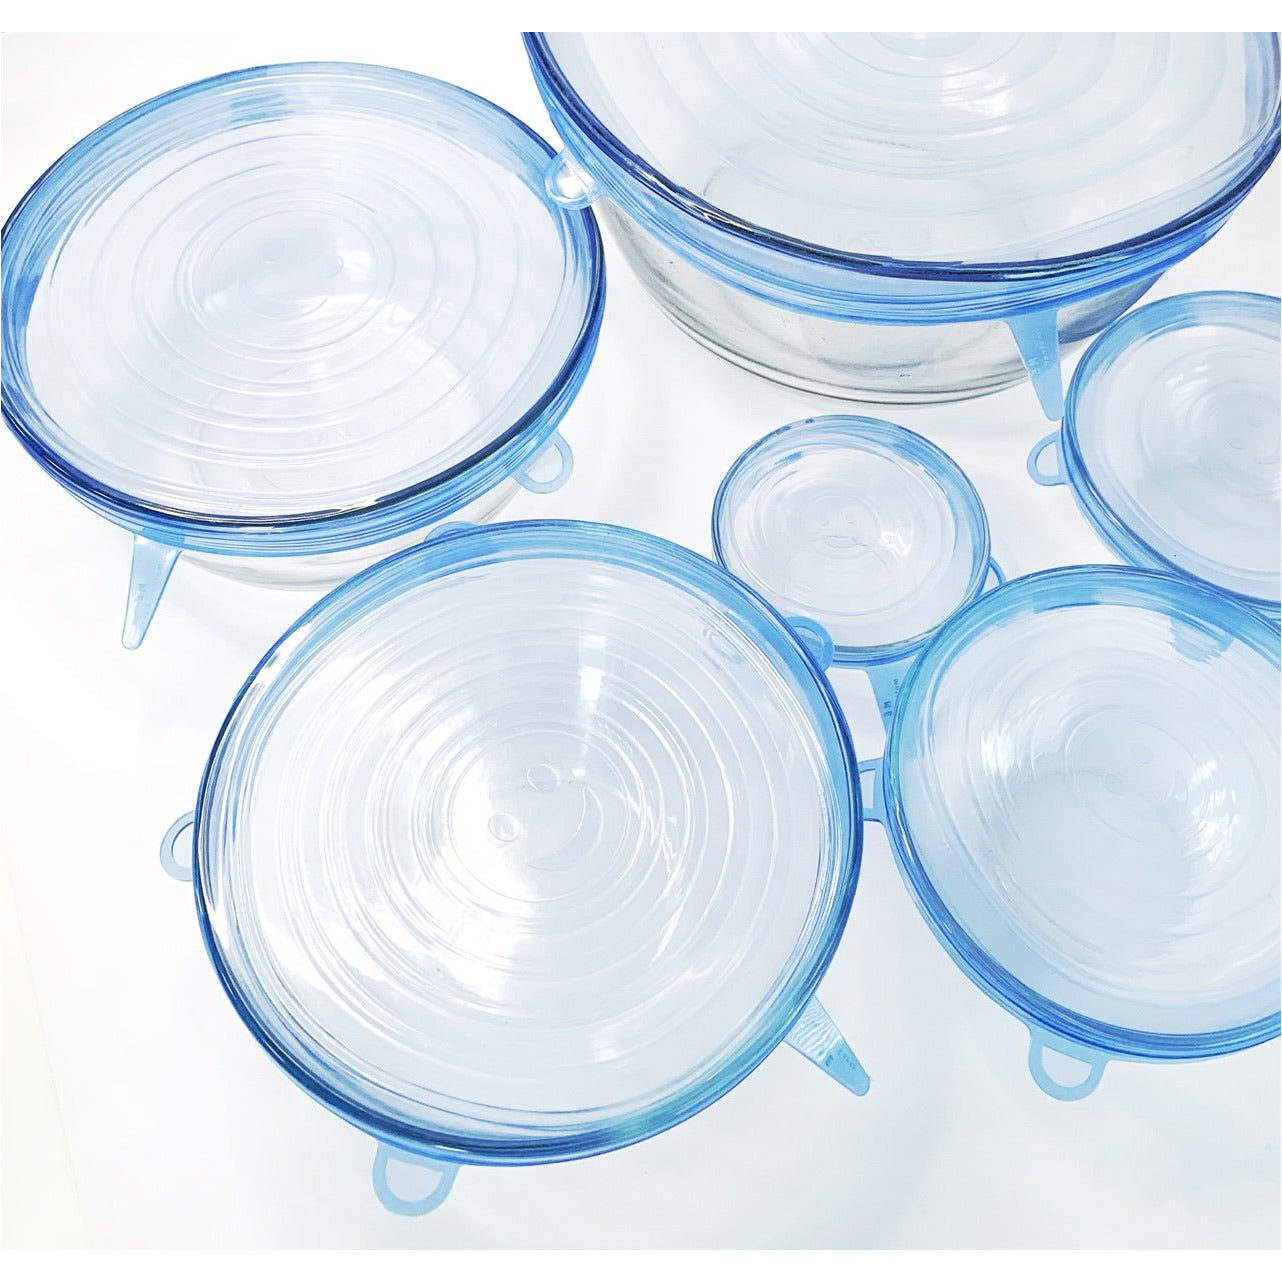 Silicone Food and Bowl Covers- 6 Pack